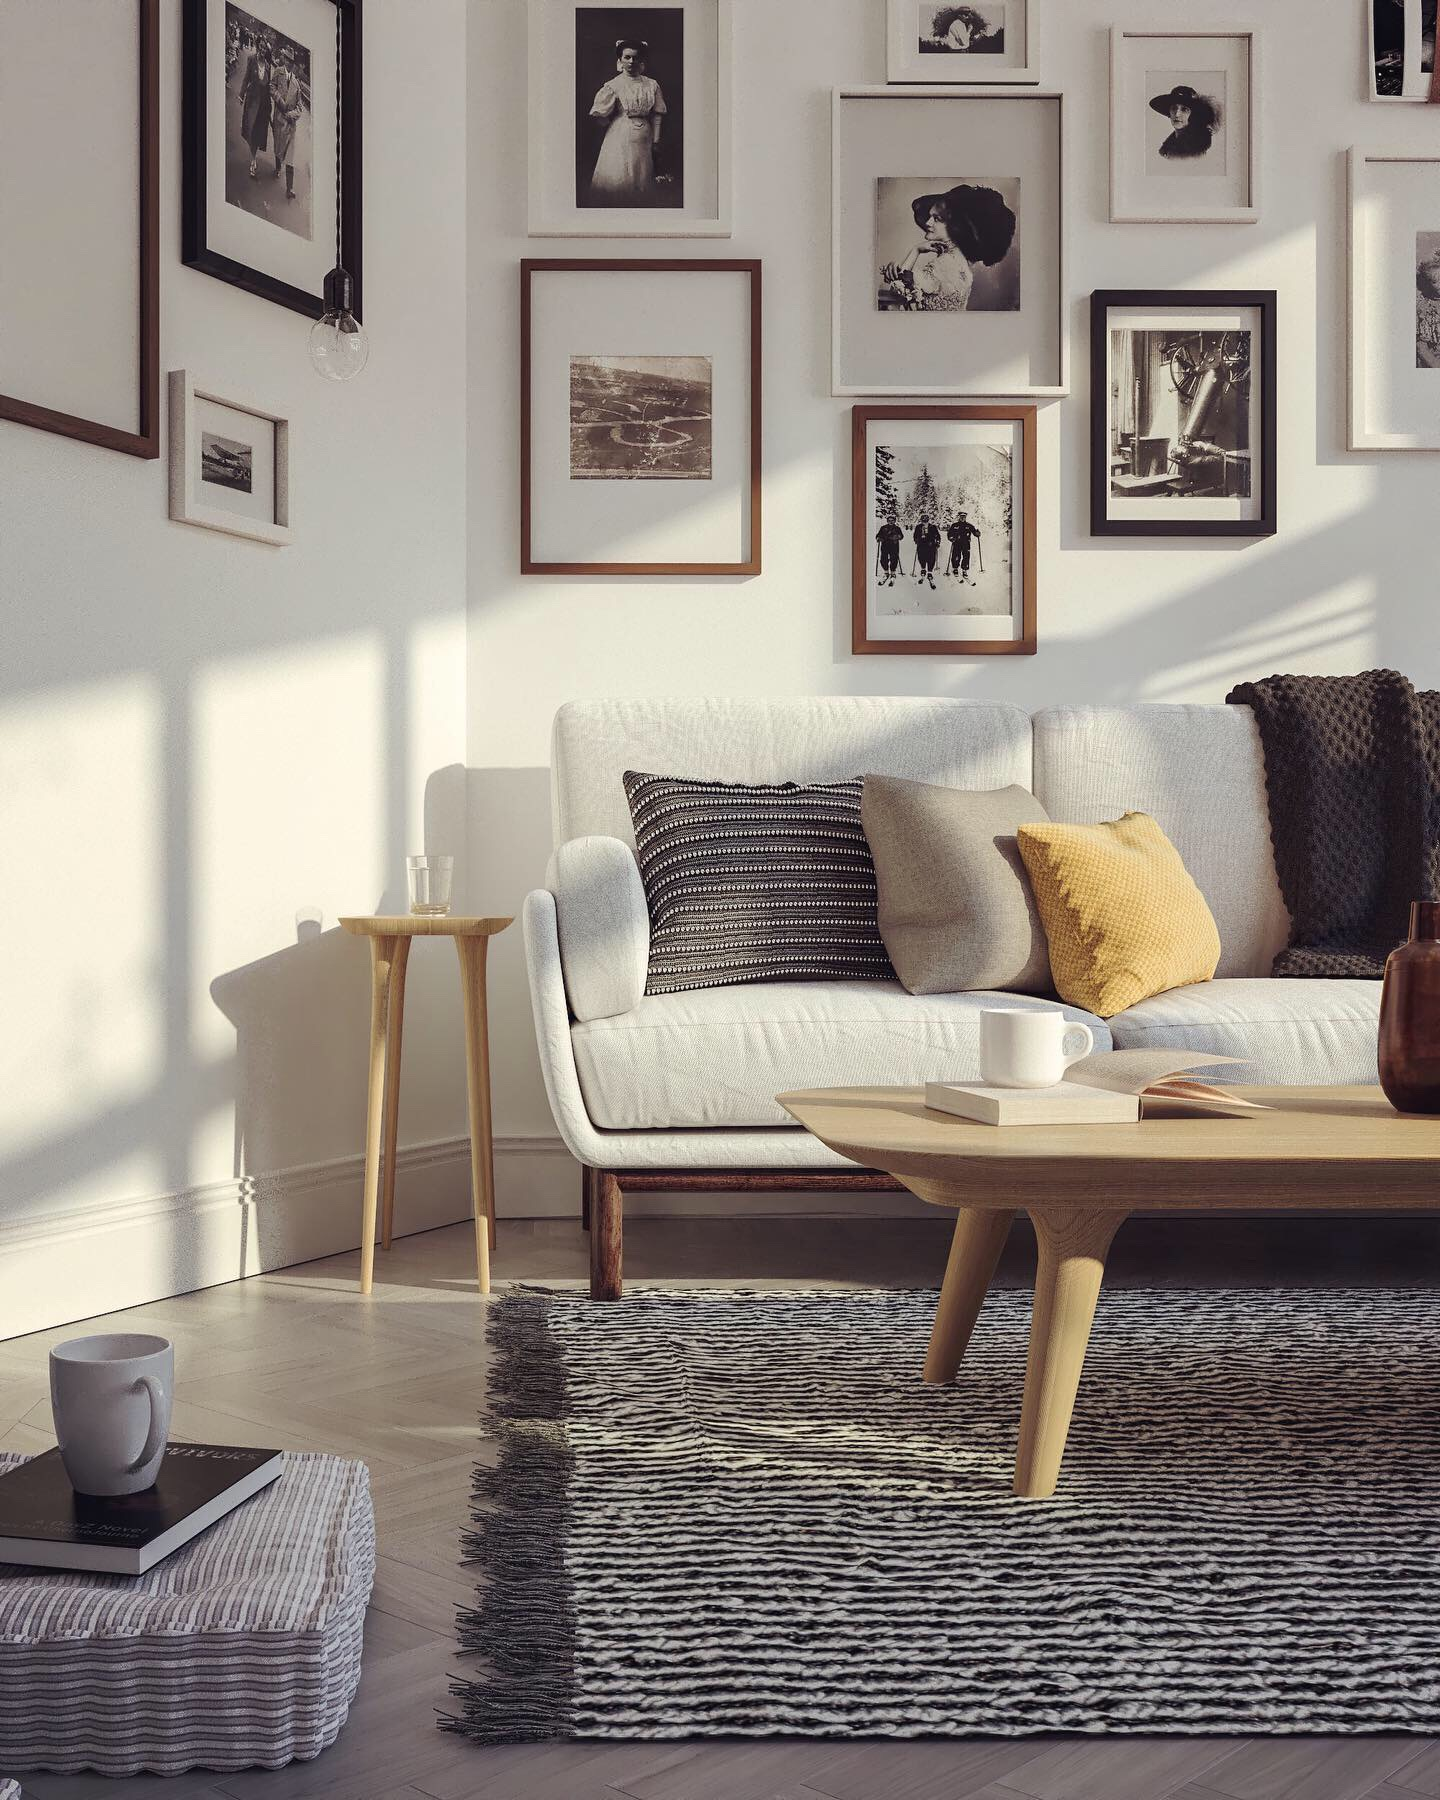 3dsmax and V-Ray Next Gpu, sofa modeled by © Pasquale Scionti